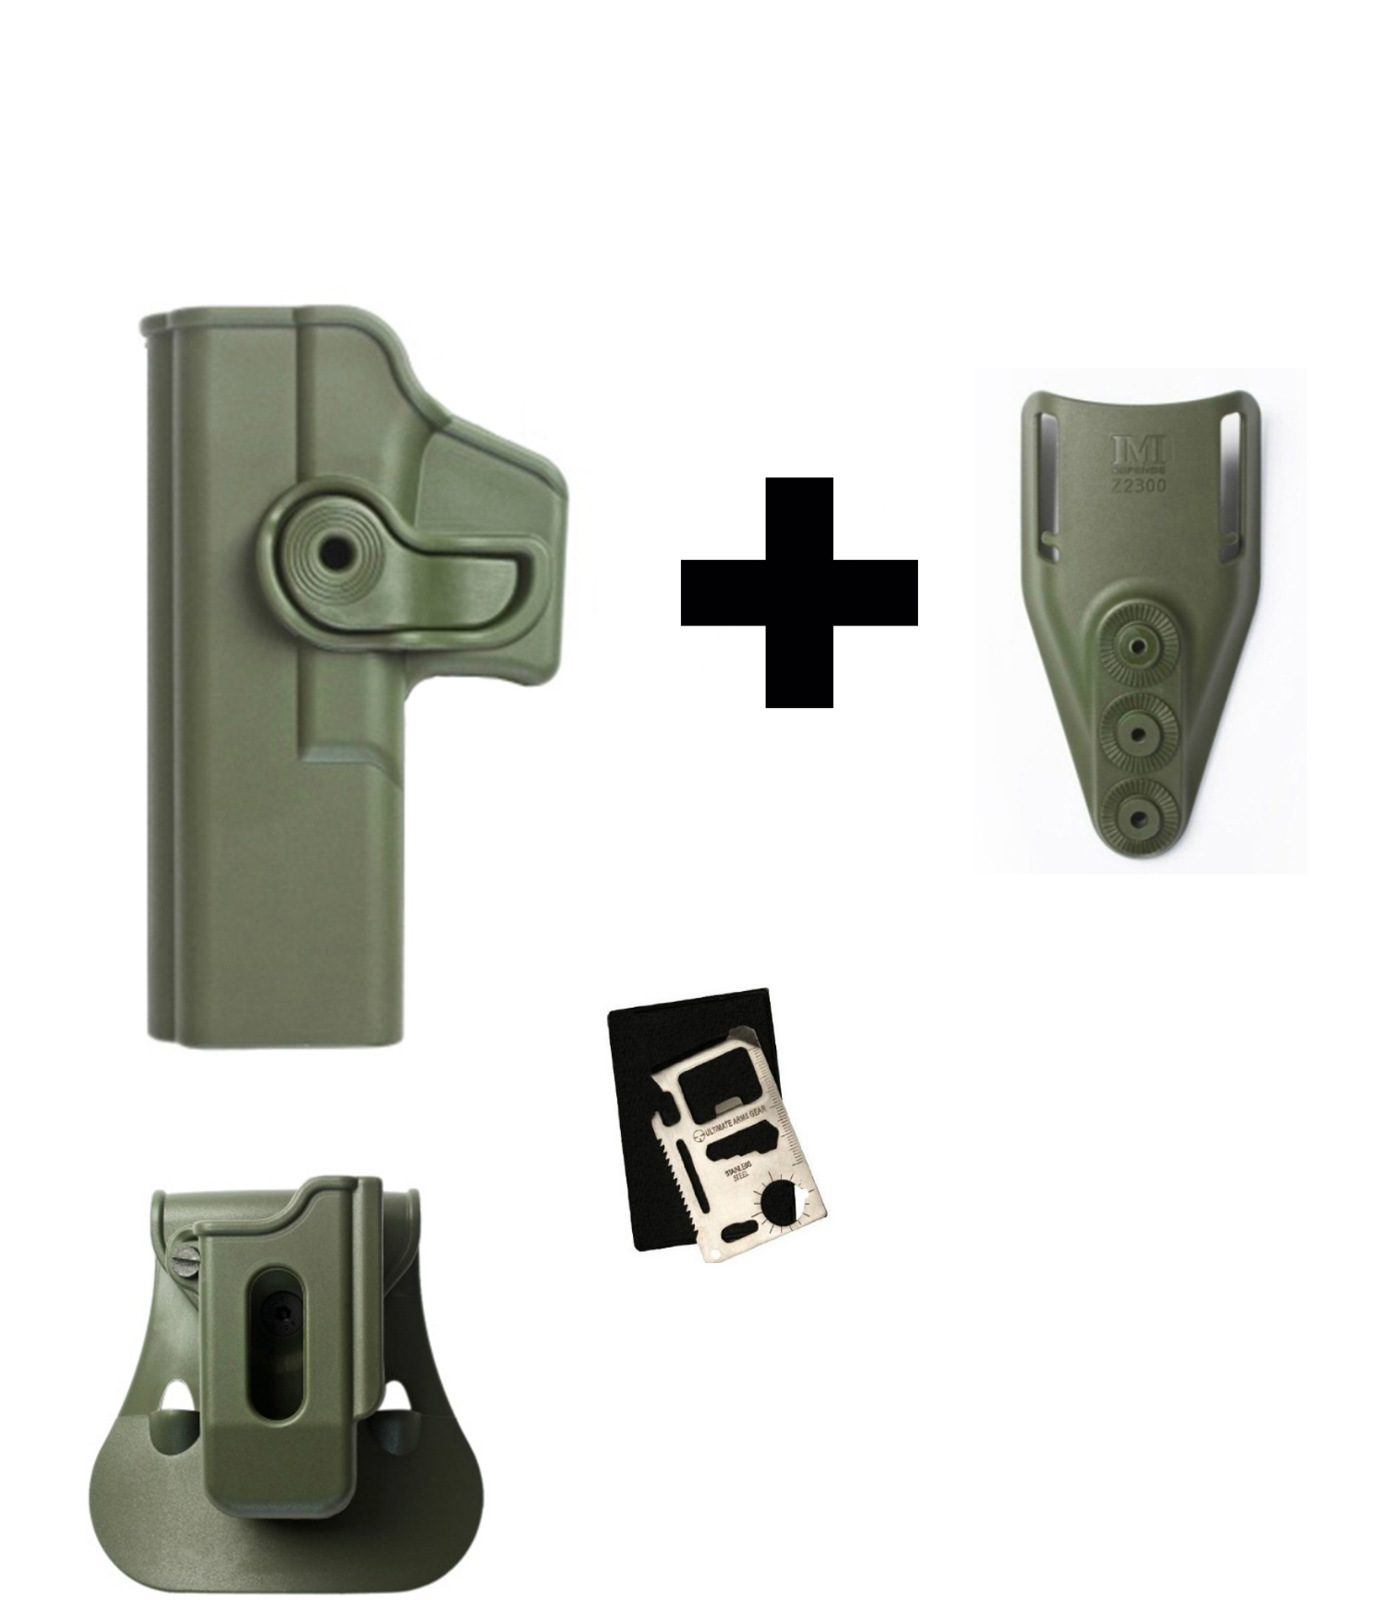 IMI Defense ZSP05 Single Mag Pouch & Paddle + Z1010LH Rotate Holster Glock 17 22 28 31 34 Left Handed Gen 4 Compatible,... by